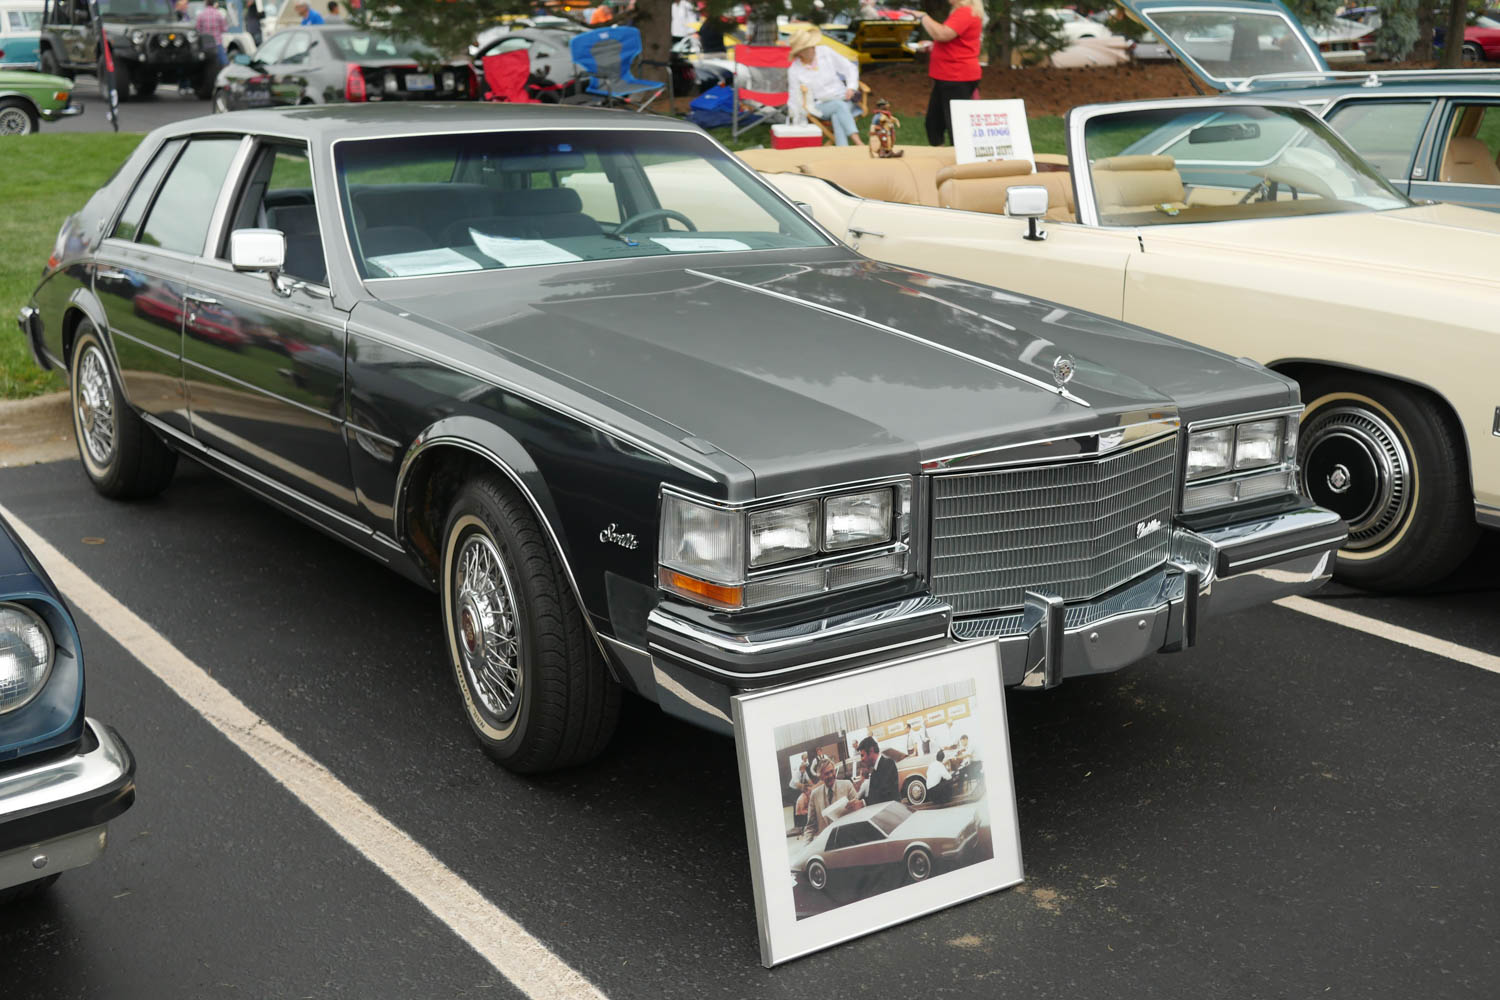 Sometimes Worst of Show honors go to a pristine example of a bad car, as was the case at the 2016 Michigan Concours d'Lemons when Debra McDonald's time capsule 1983 Cadillac Seville won Worst of Show.